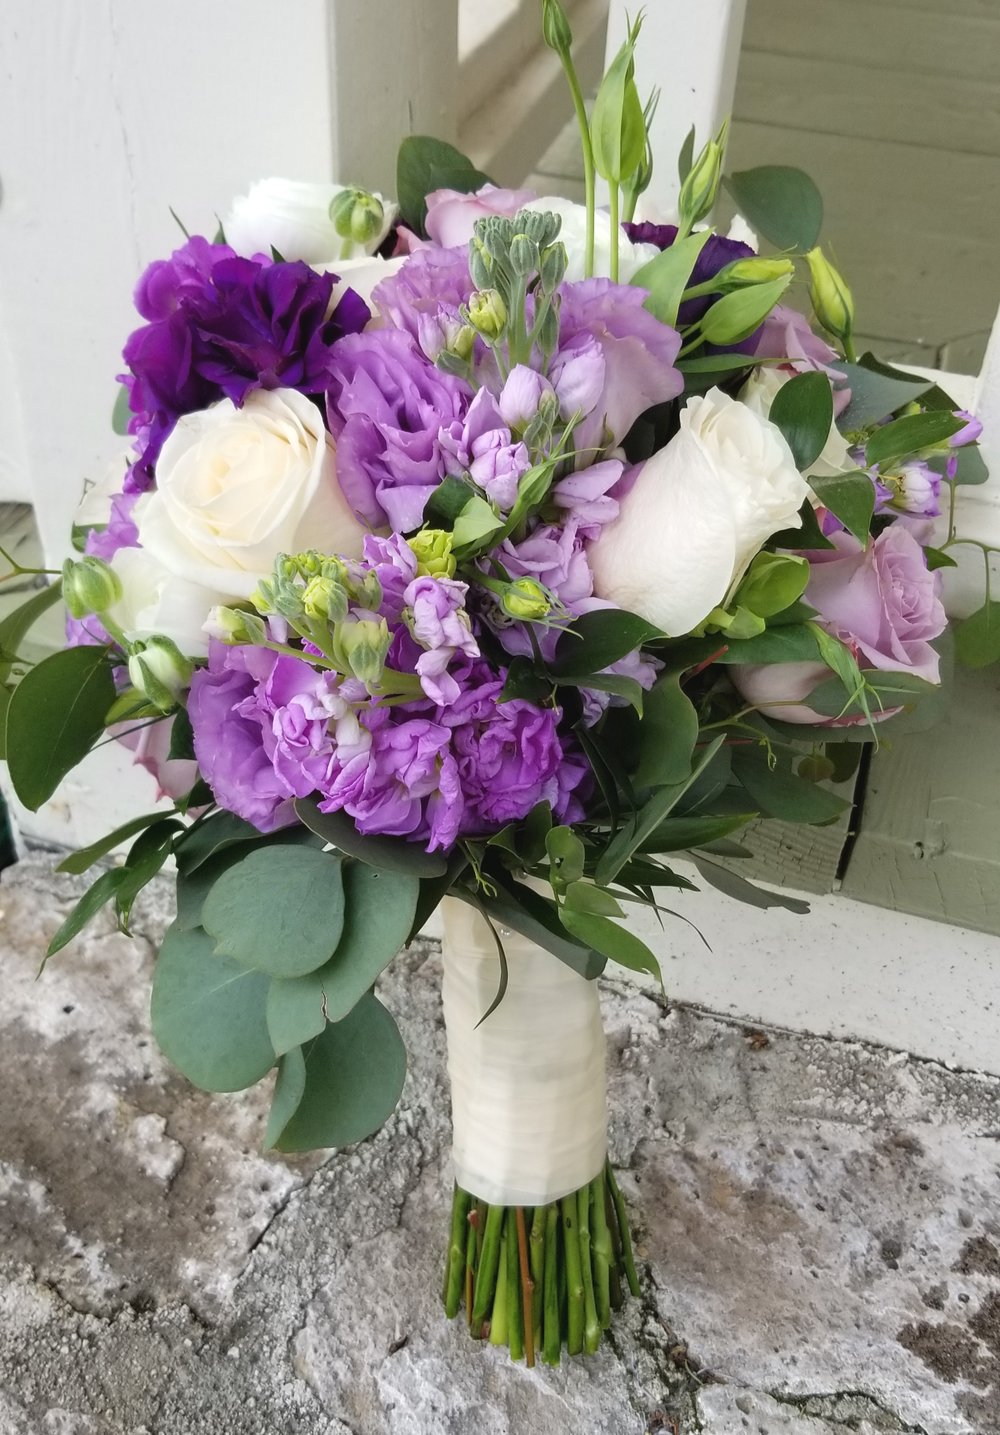 Bridal bouquet featuring soft white roses and ranunculus and vibrant purple lisianthus, accented with dollar eucalyptus greens. Hand gathered and tied with white satin ribbon.